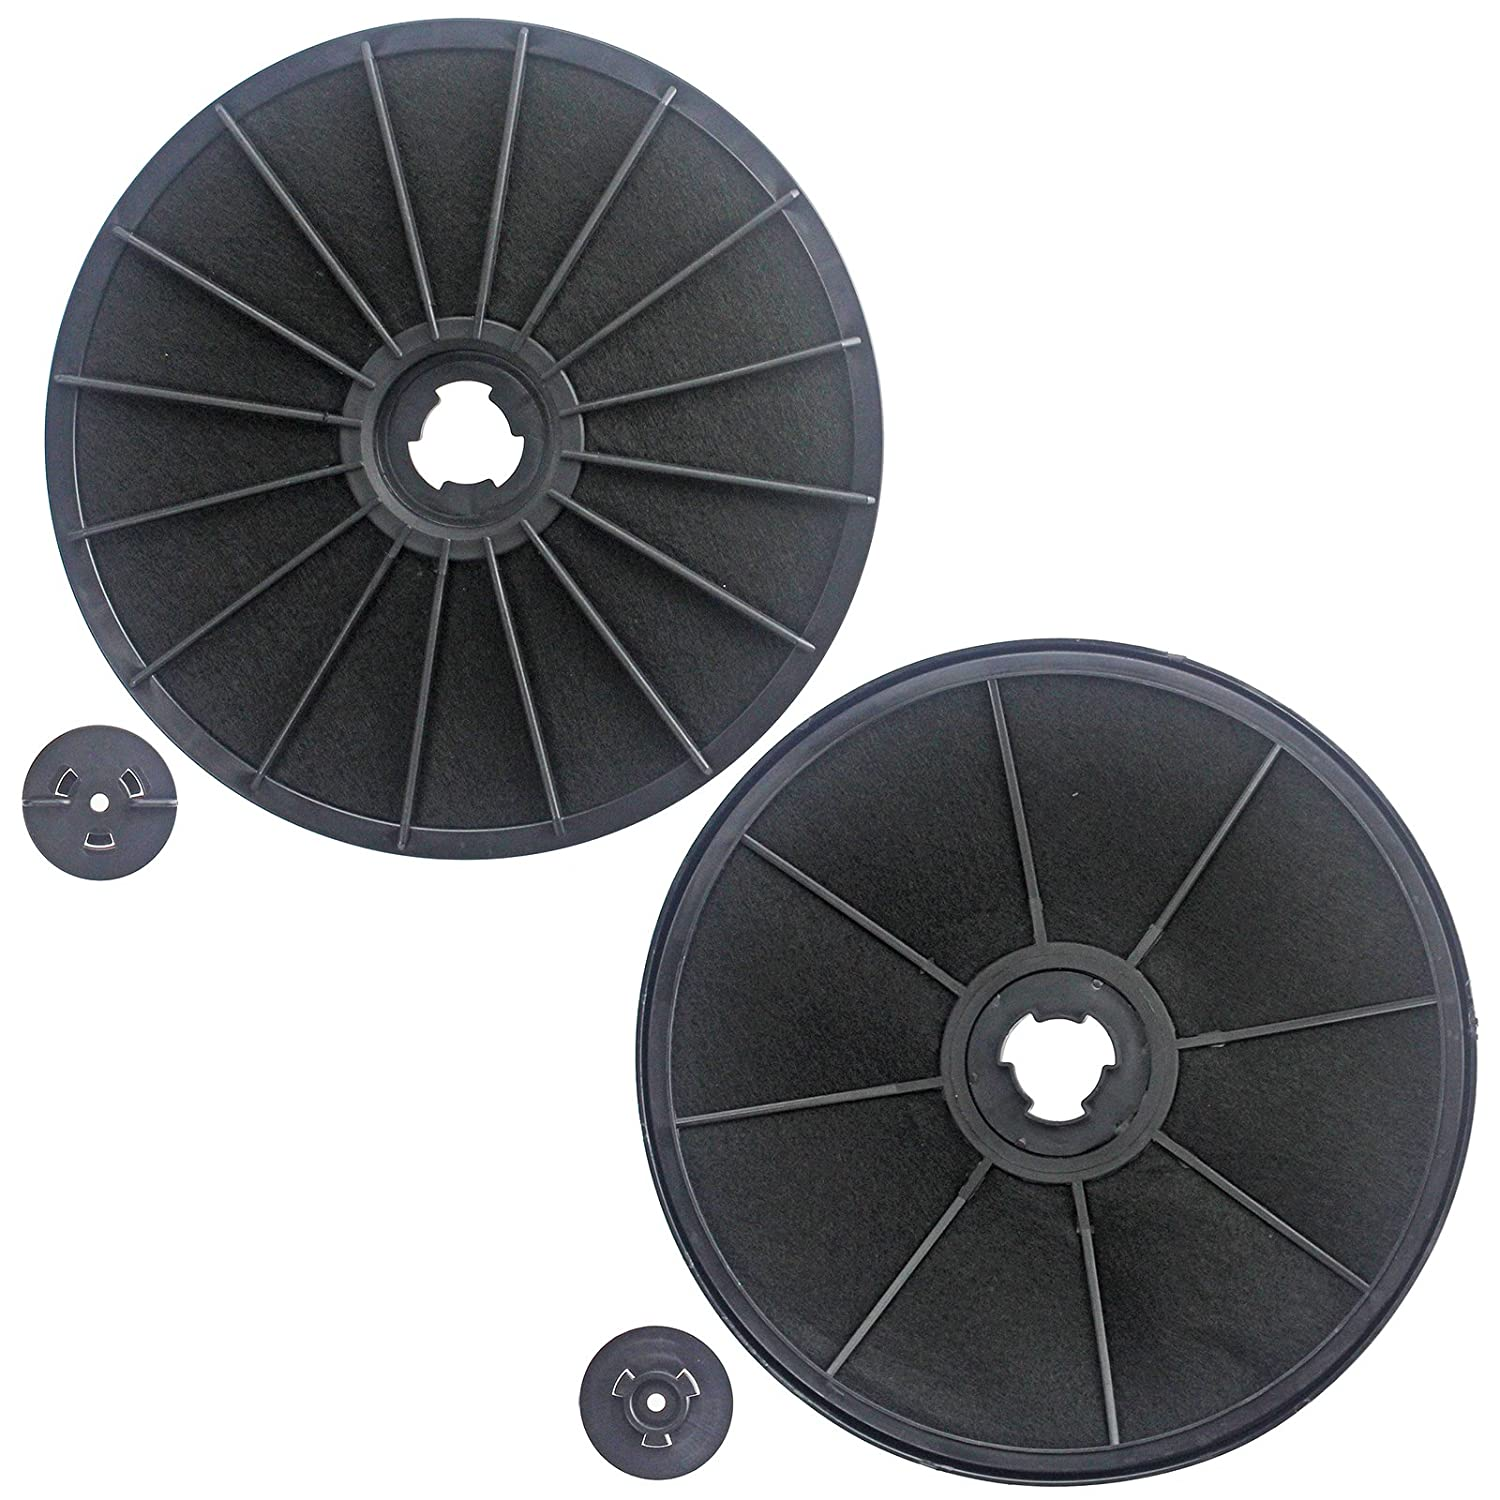 SPARES2GO Carbon Charcoal Vent Filters for Ariston Cooker Hood/Extractor Vents (Pack of 2)